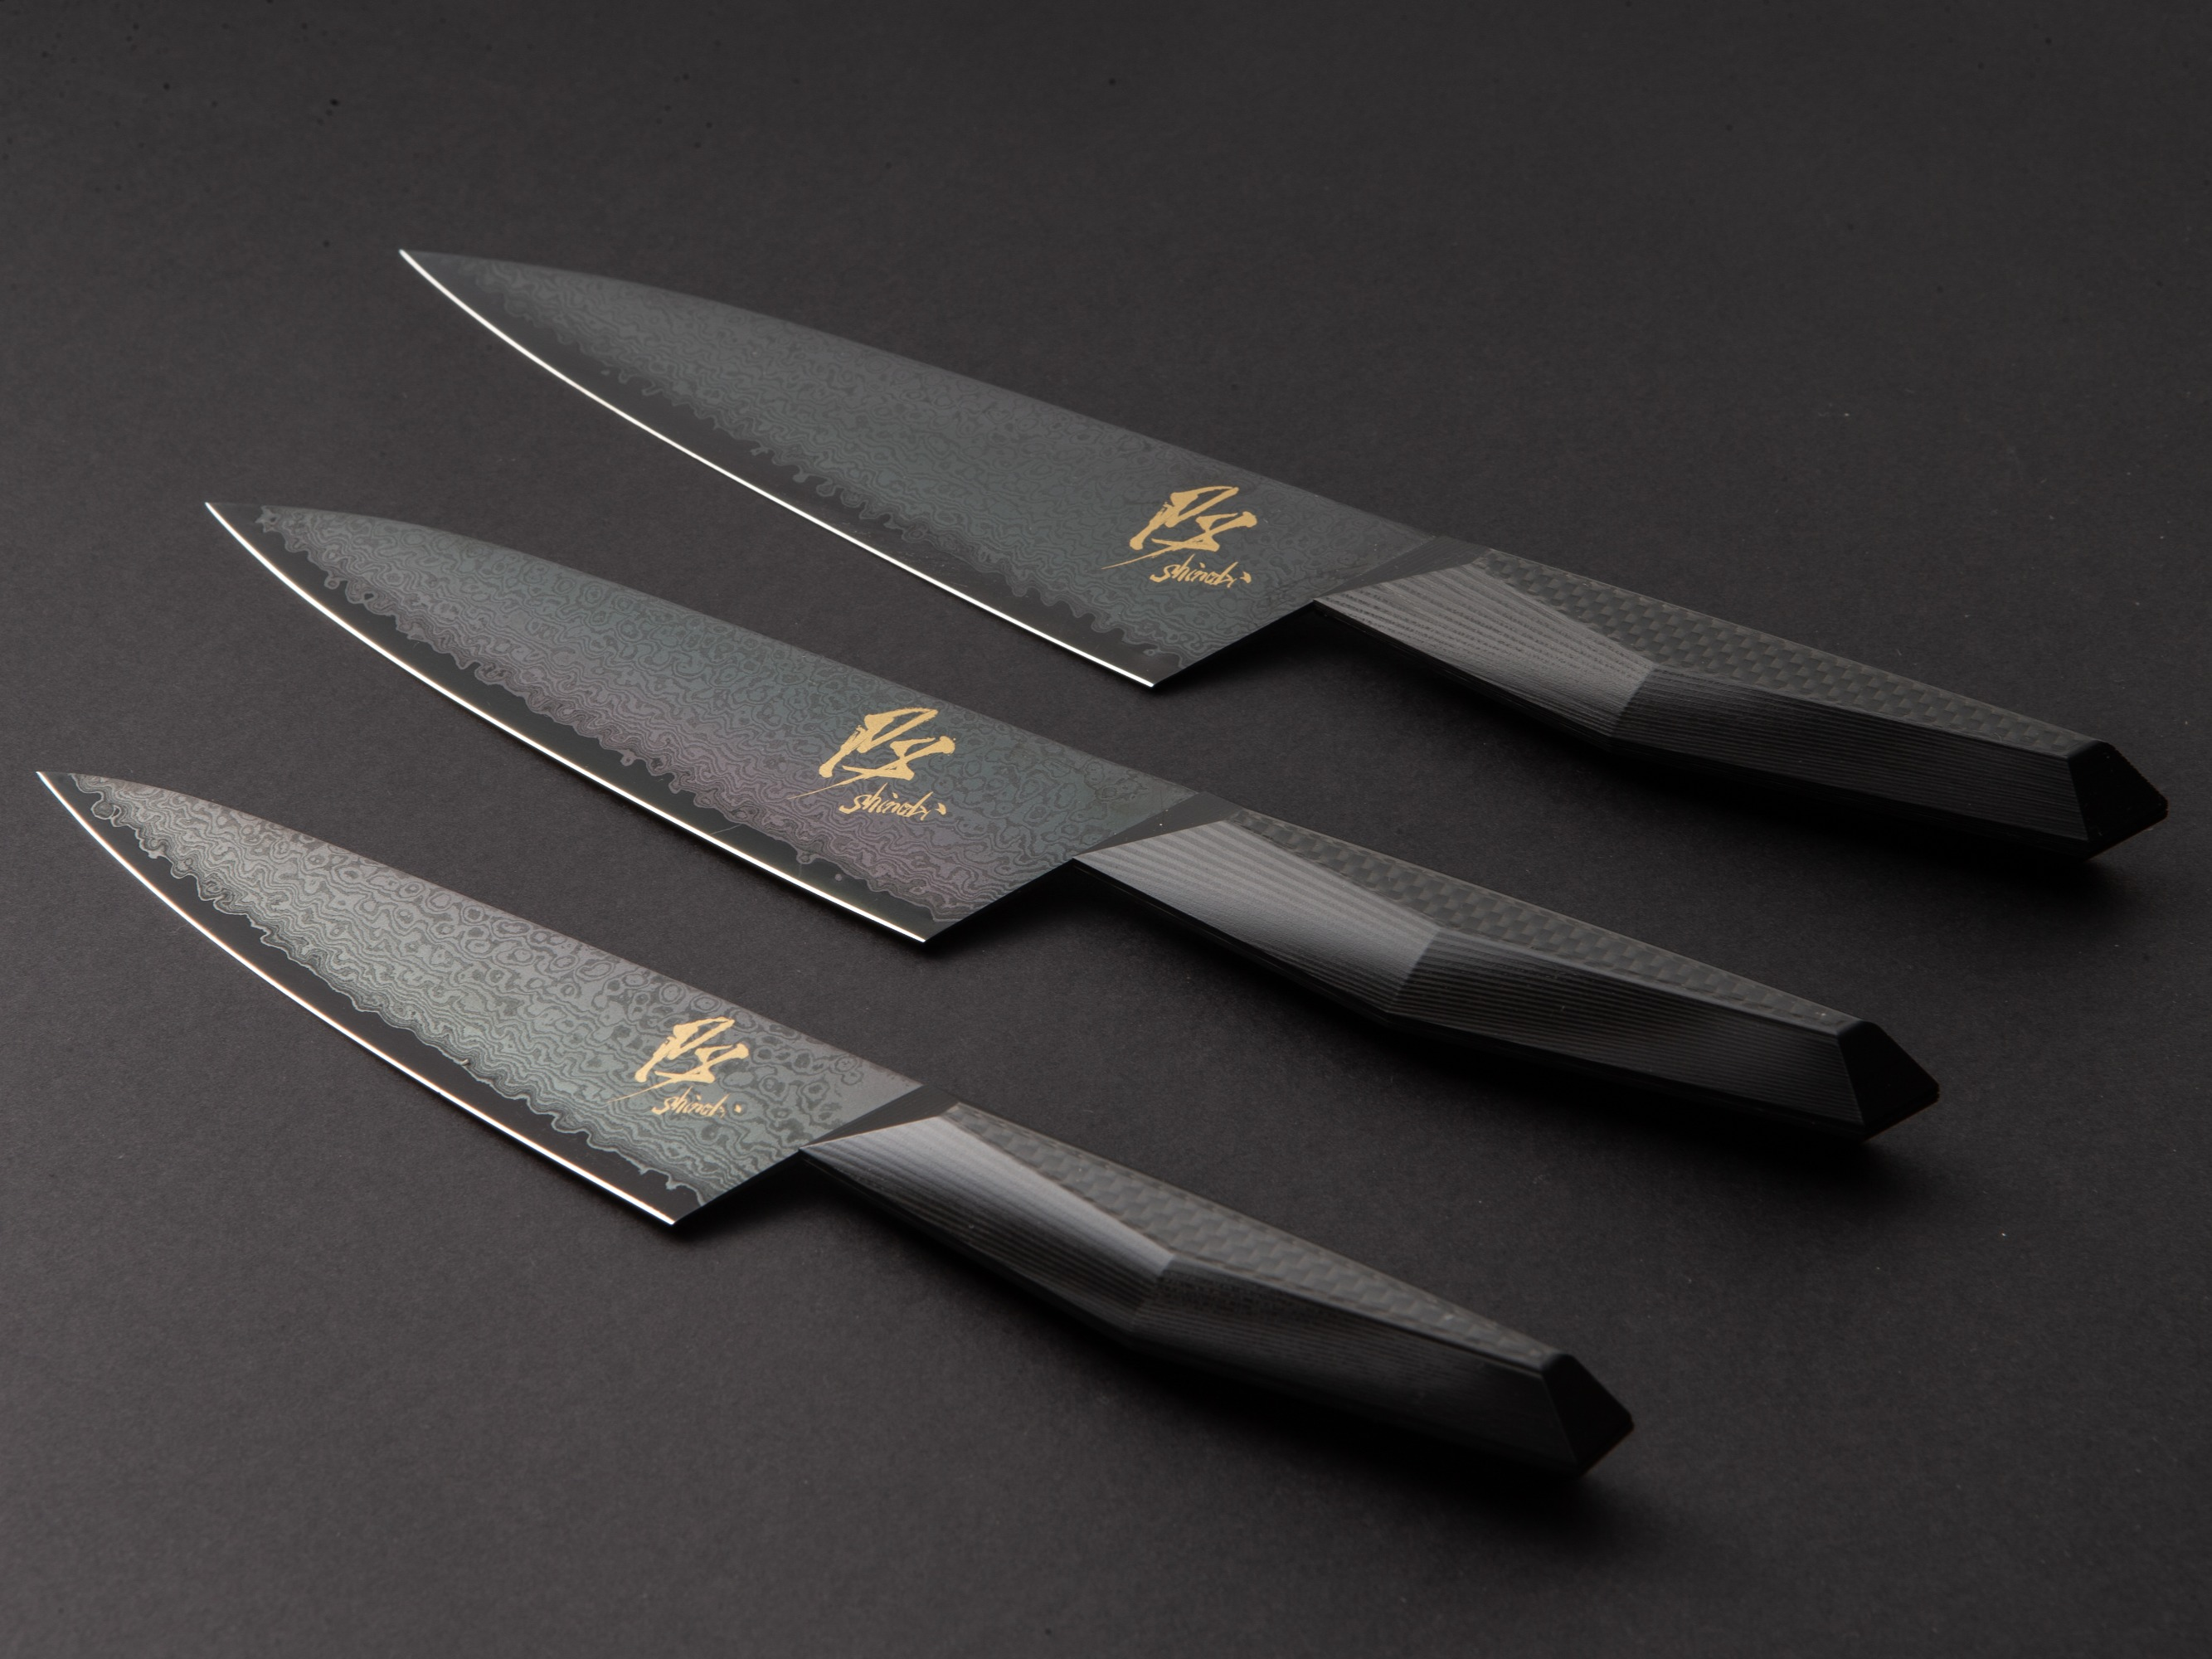 SHINOBI / CARBON DUMASCUS KNIVES